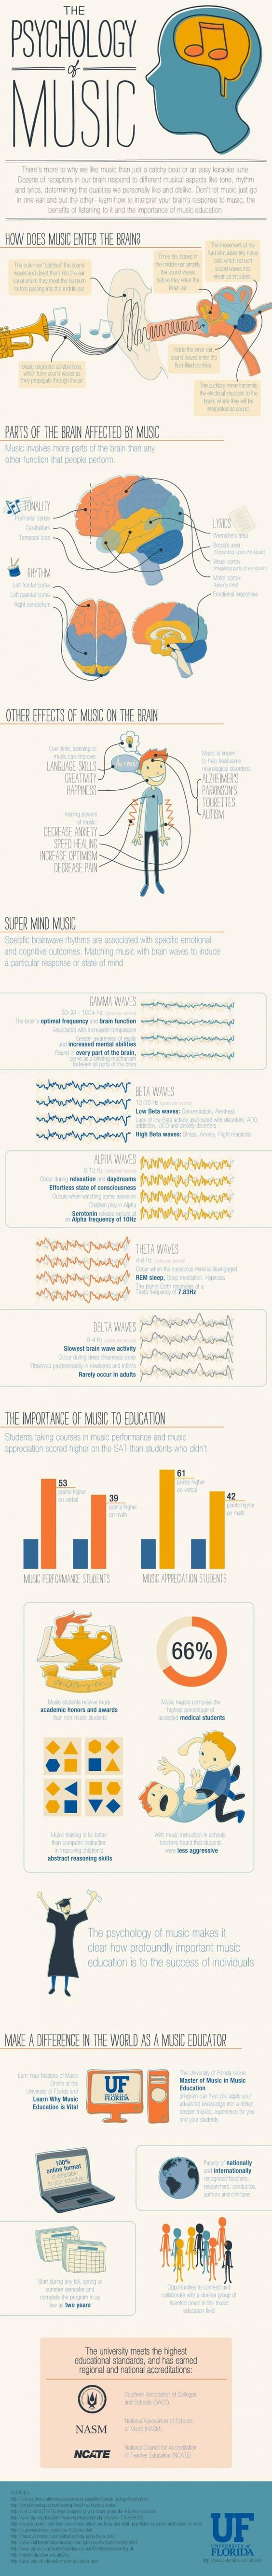 How do musics effect people's mood? how is music use to persuasively in advertisement?